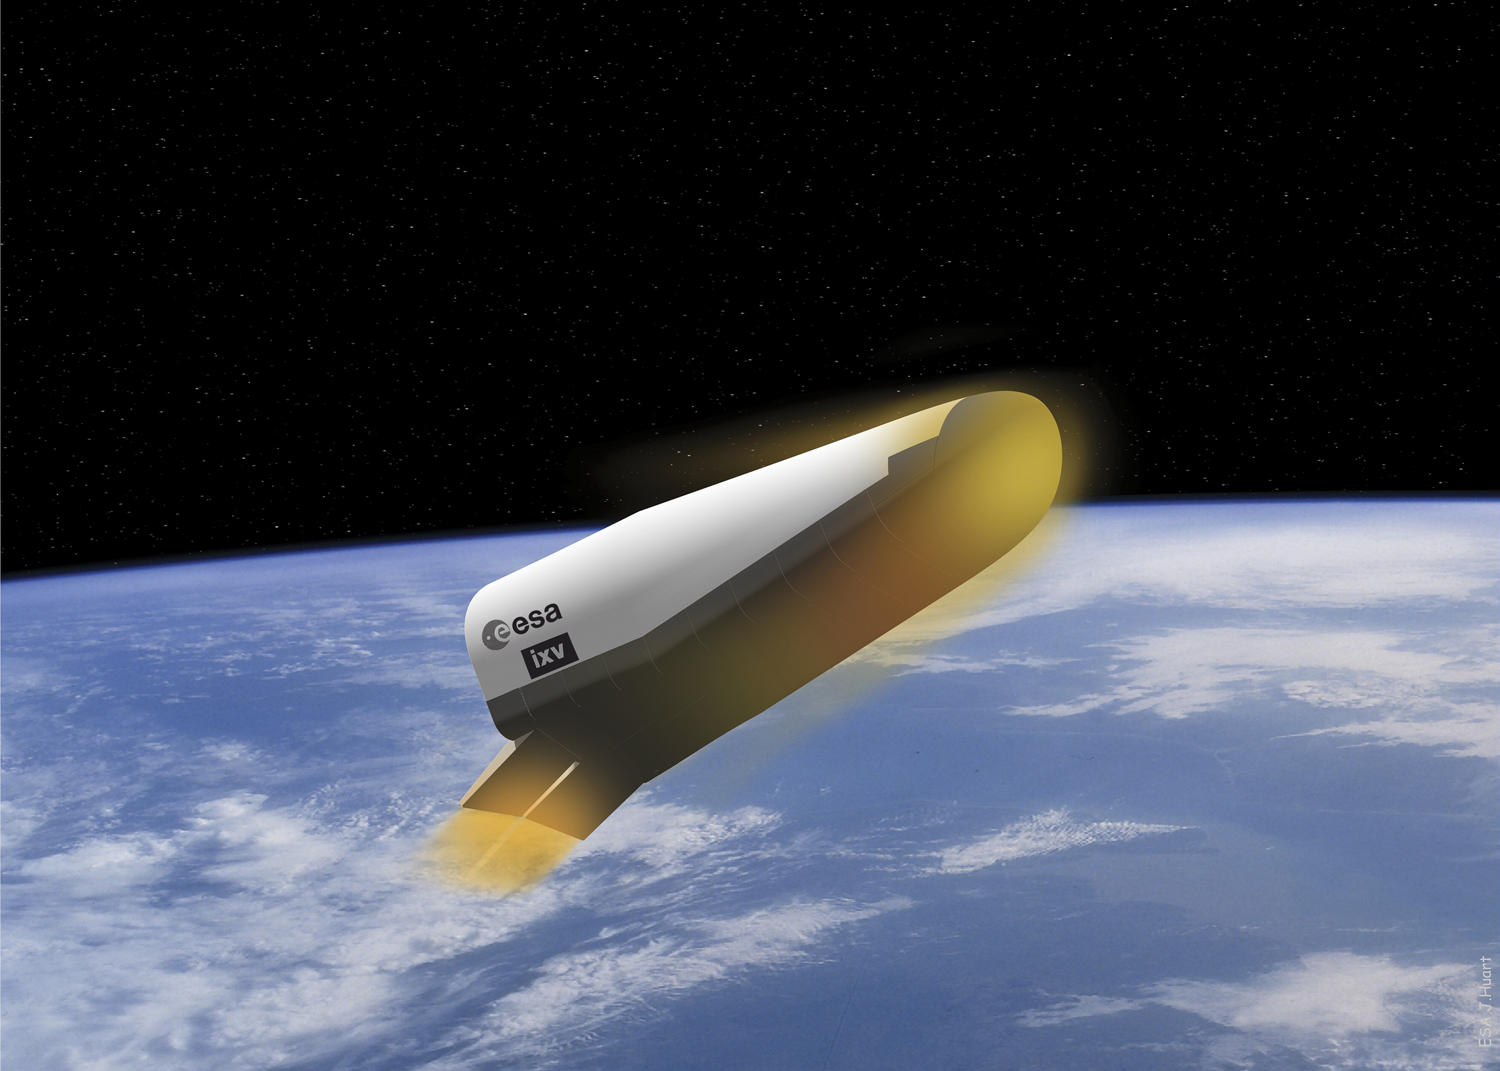 Vue d'artiste de l'IXV (Intermediate eXperimental Vehicle)